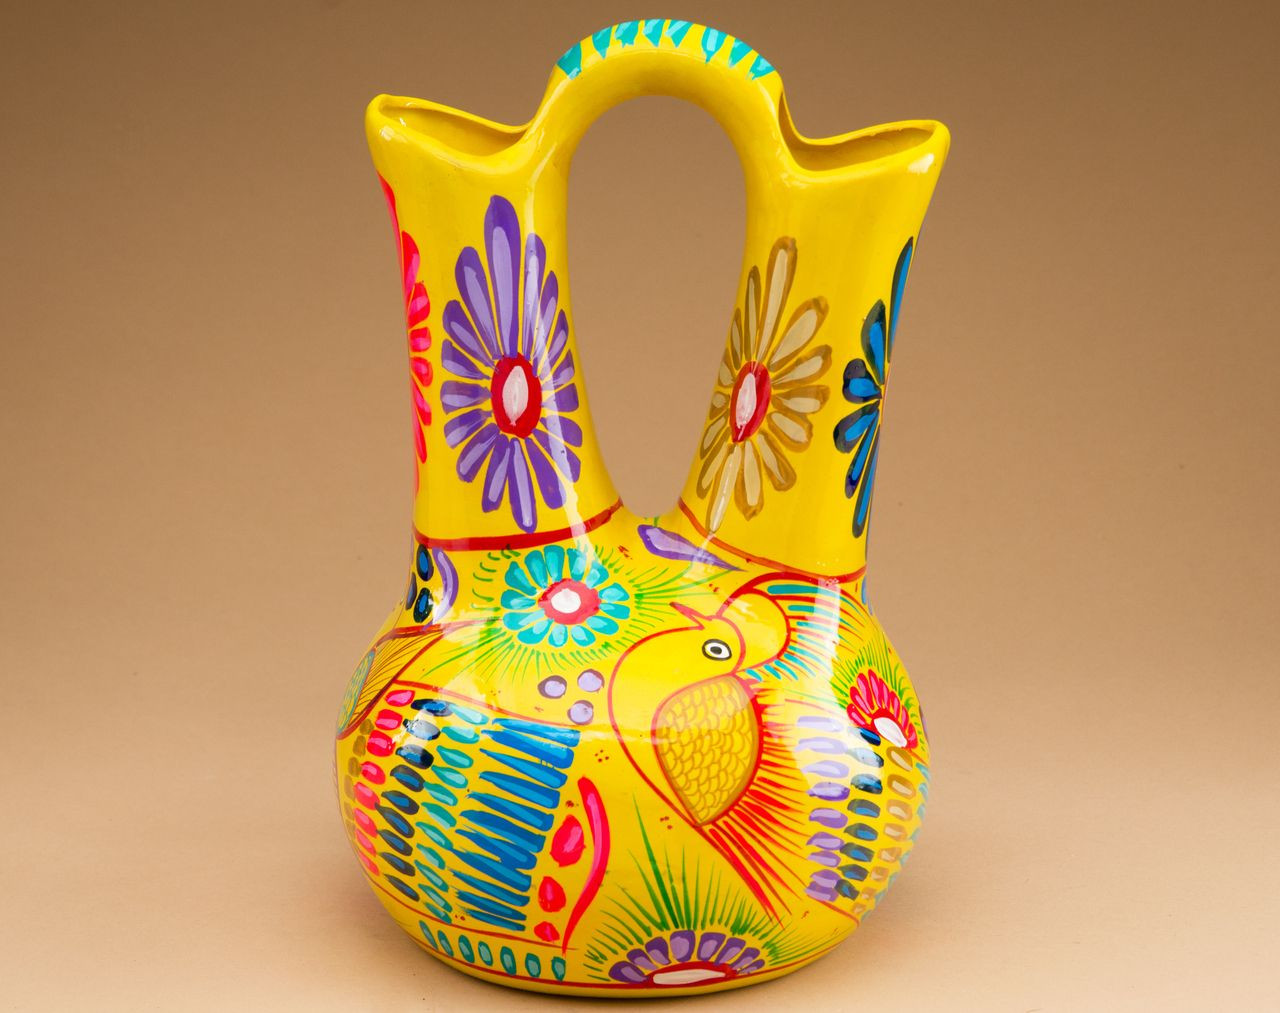 mexican wedding vase of southwest talavera pottery wedding vase 11 p362 pinterest pertaining to hand painted southwest talavera wedding vases are one of the outstanding ceramics of southern mexico with intricate floral patterns and brilliant colors